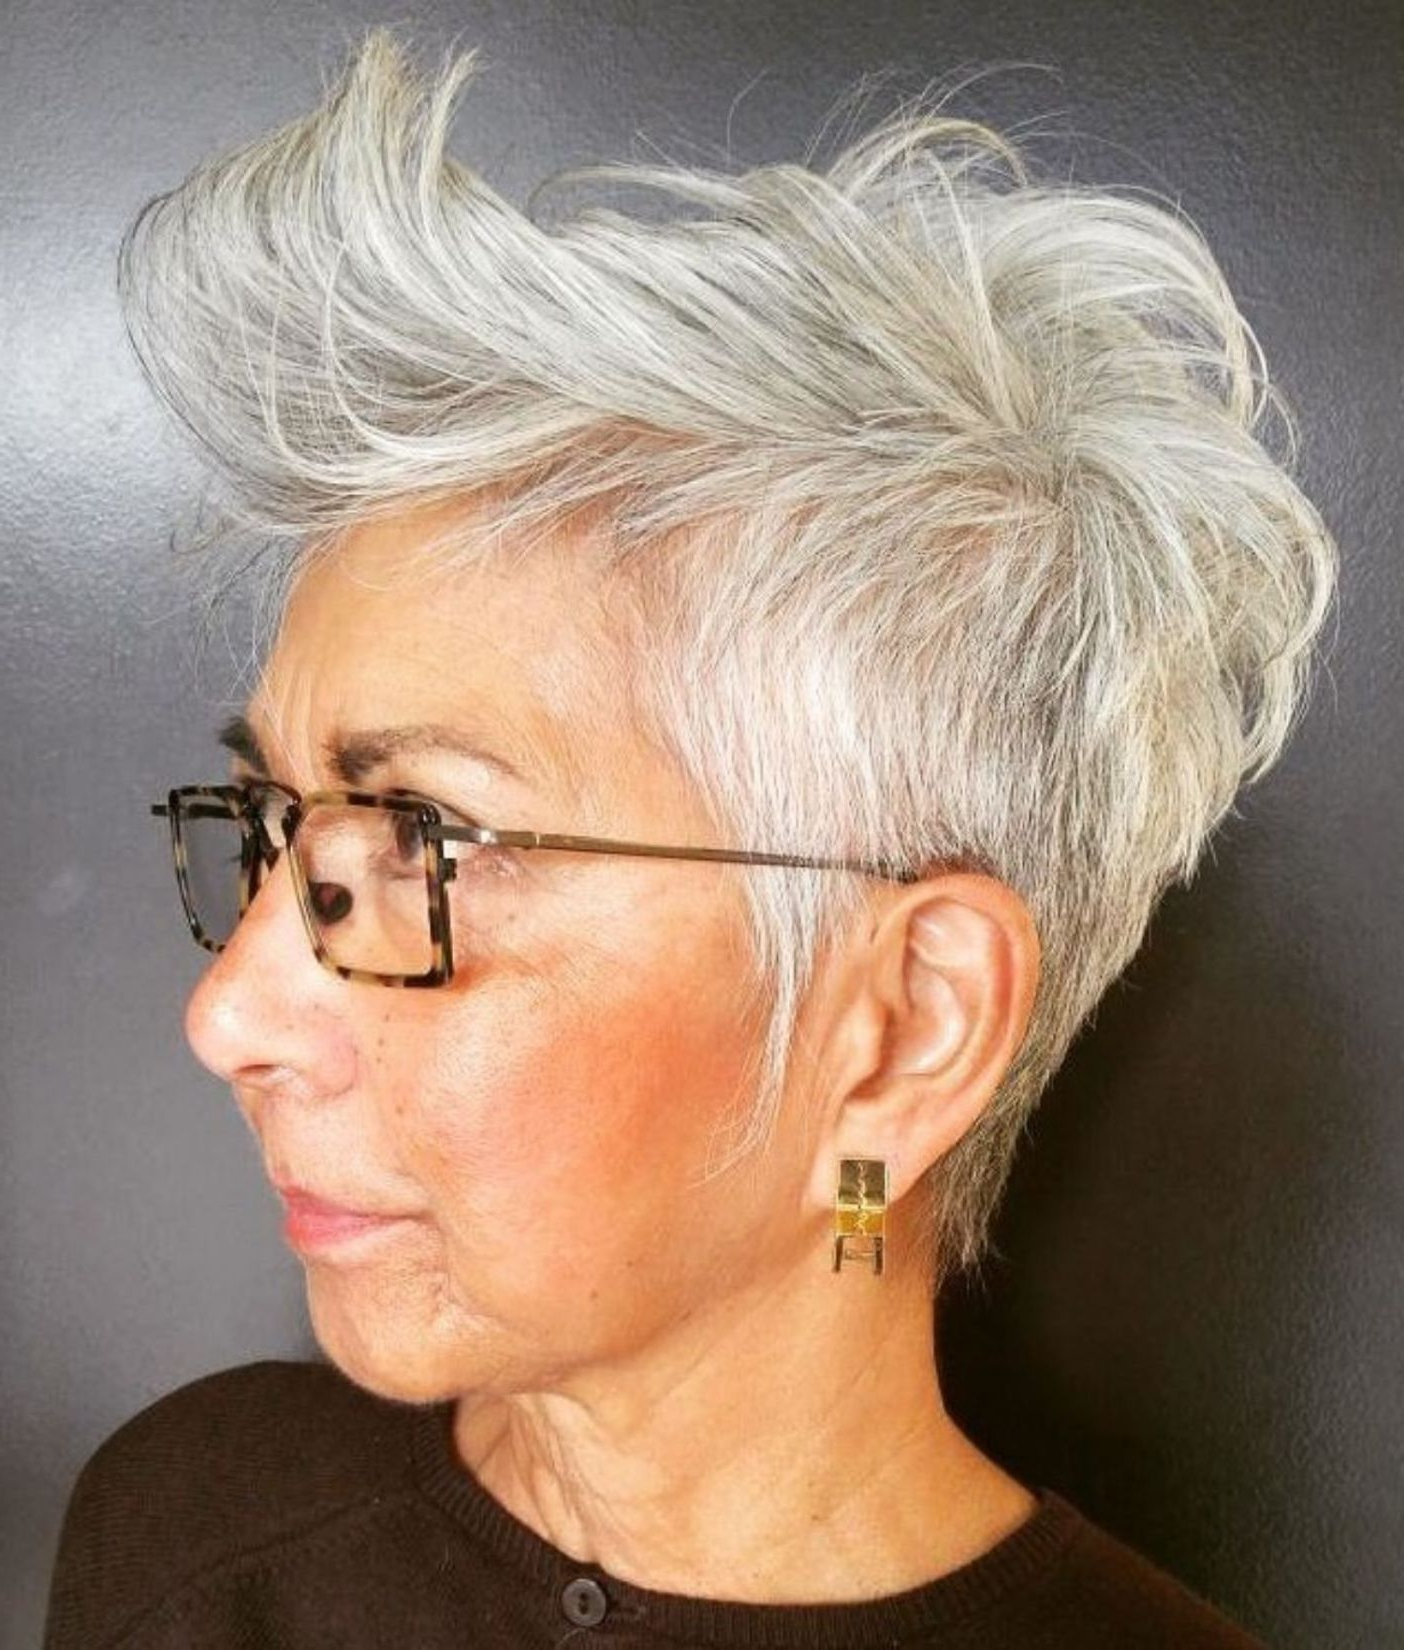 60 Gorgeous Gray Hair Styles In 2018 | Style | Pinterest | Hair Regarding Tapered Gray Pixie Hairstyles With Textured Crown (View 8 of 20)